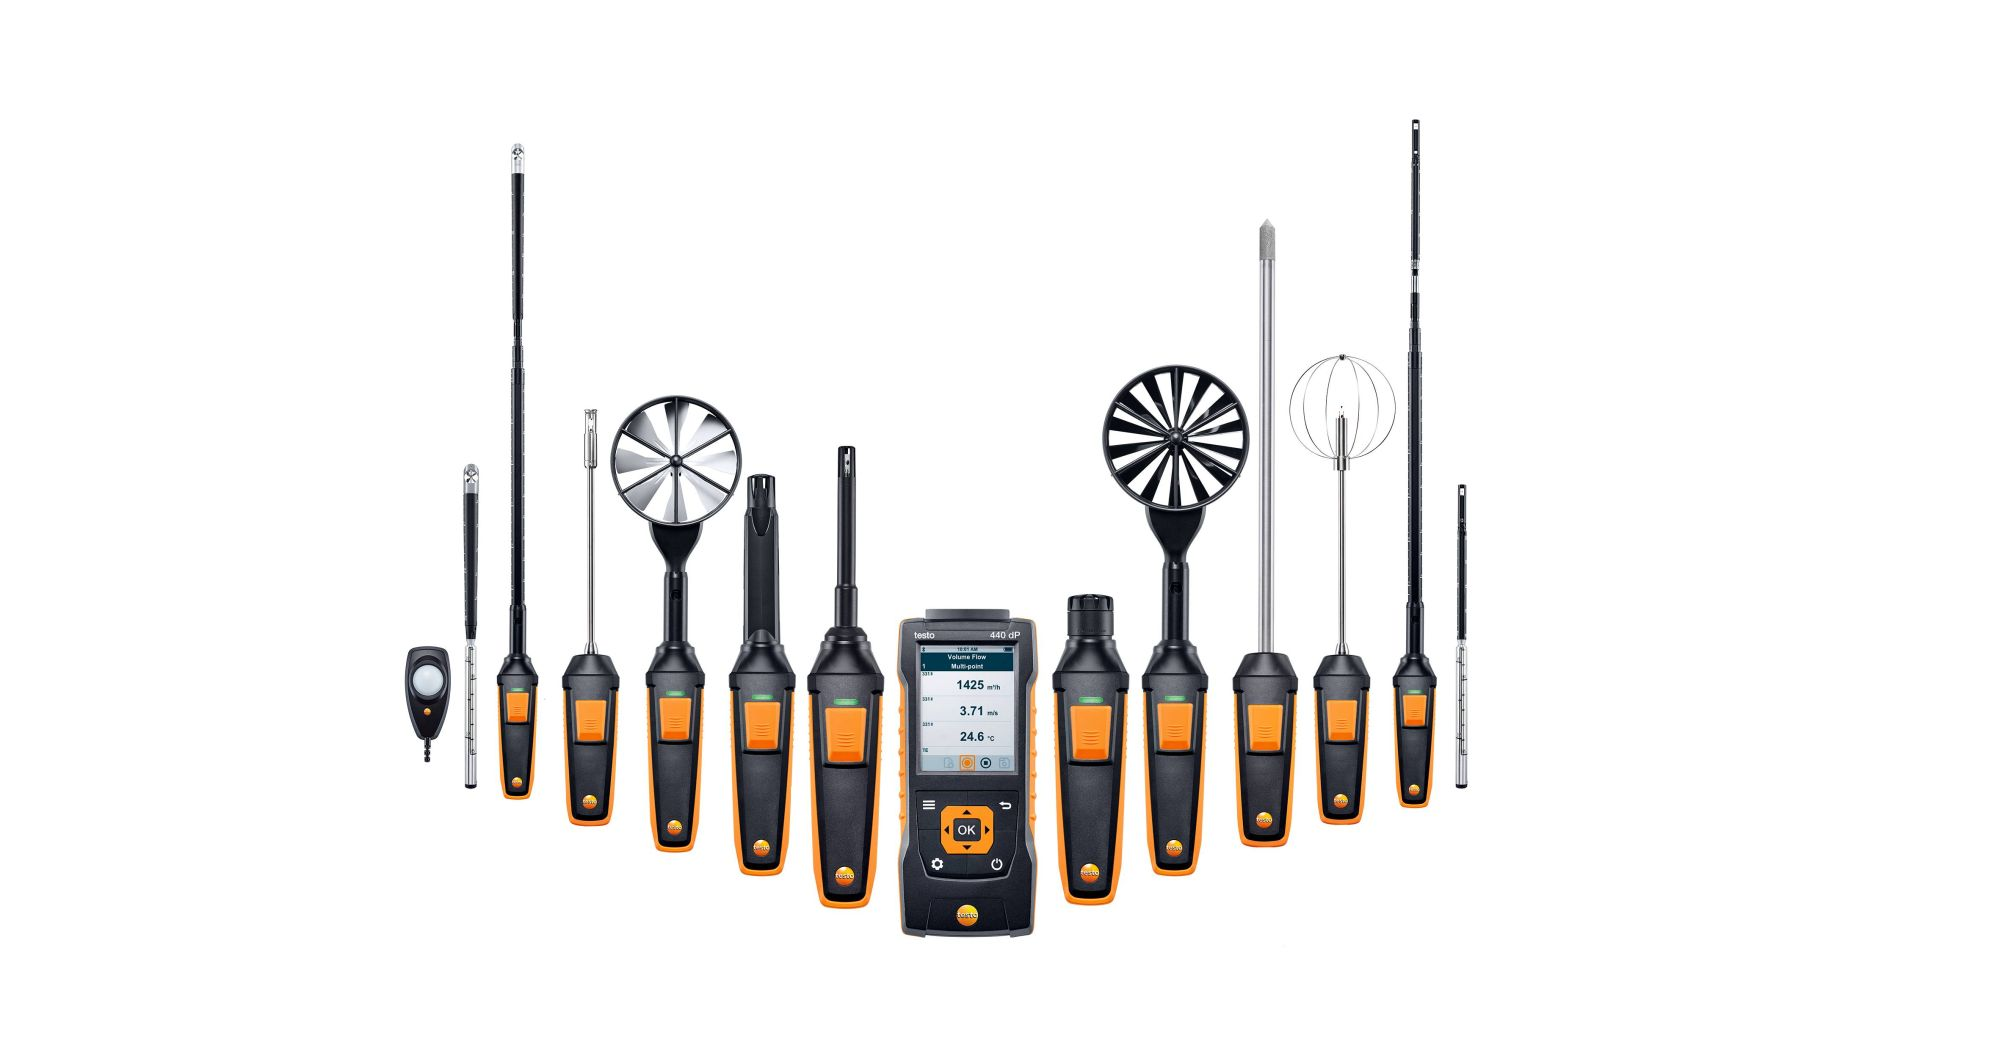 testo 440 Air velocity and IAQ measuring instrument